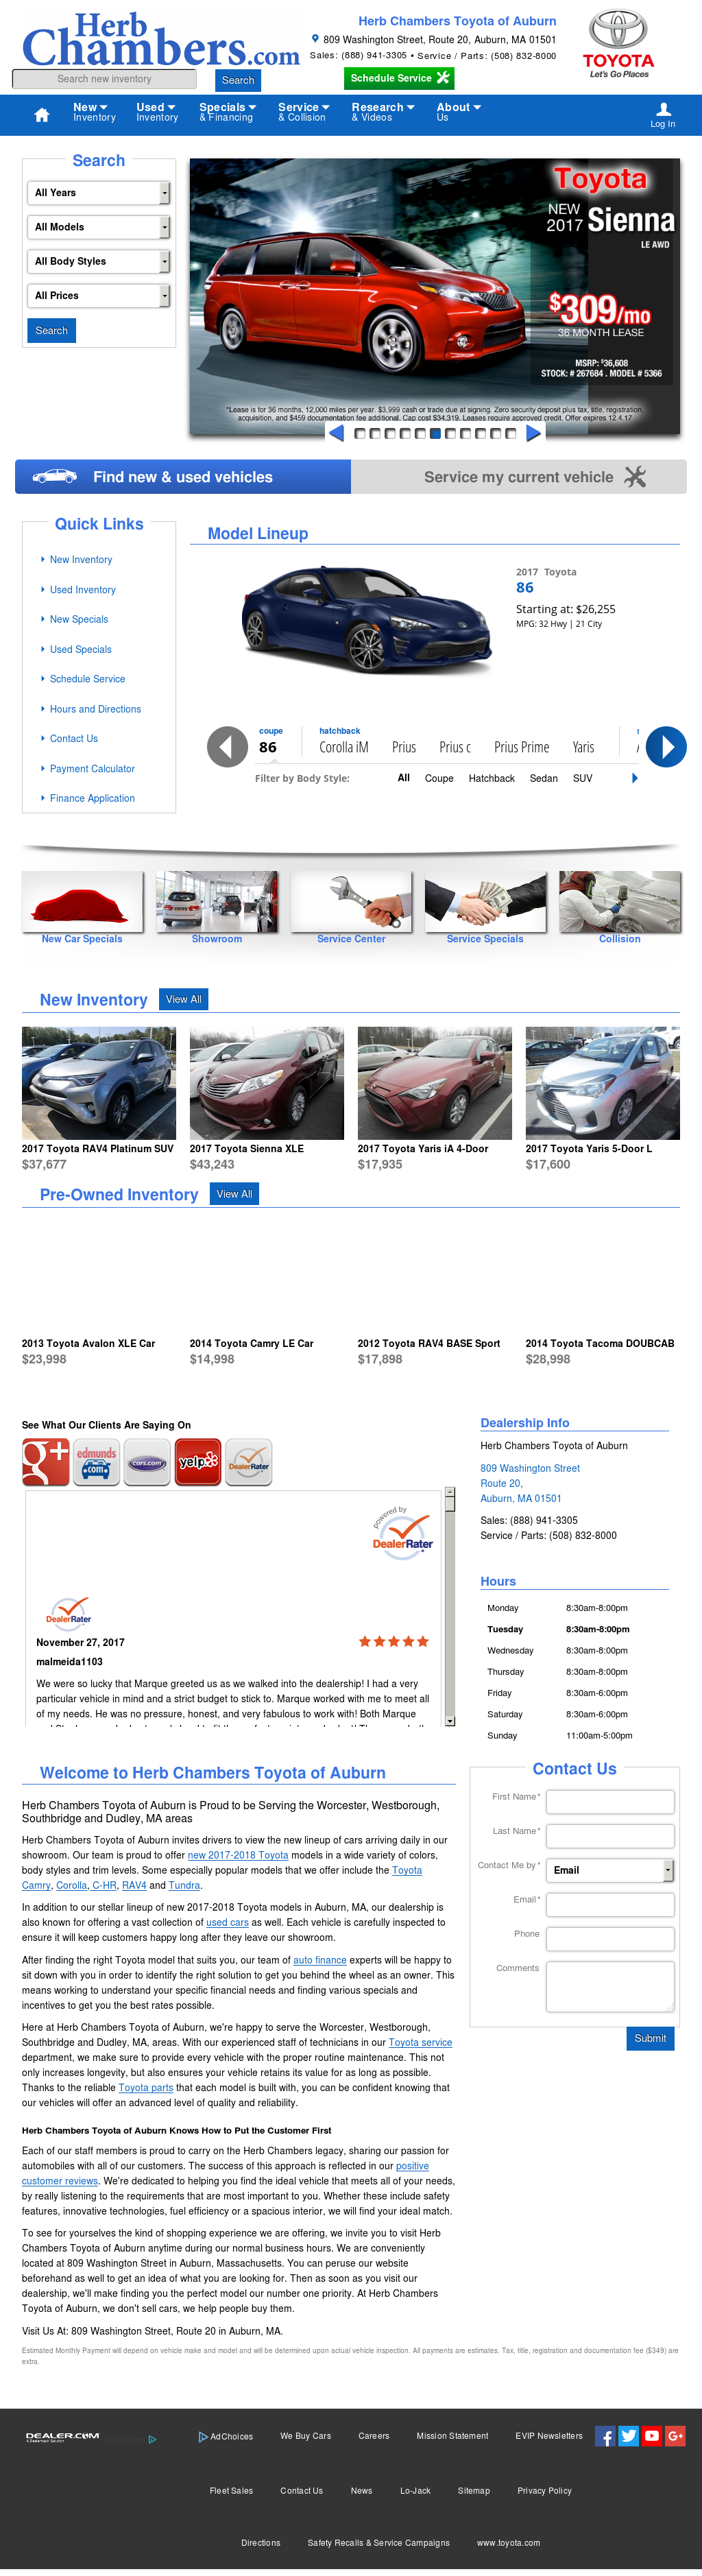 Herb Chambers Toyota Scion Of Auburnu0027s Website Screenshot On Nov 2017